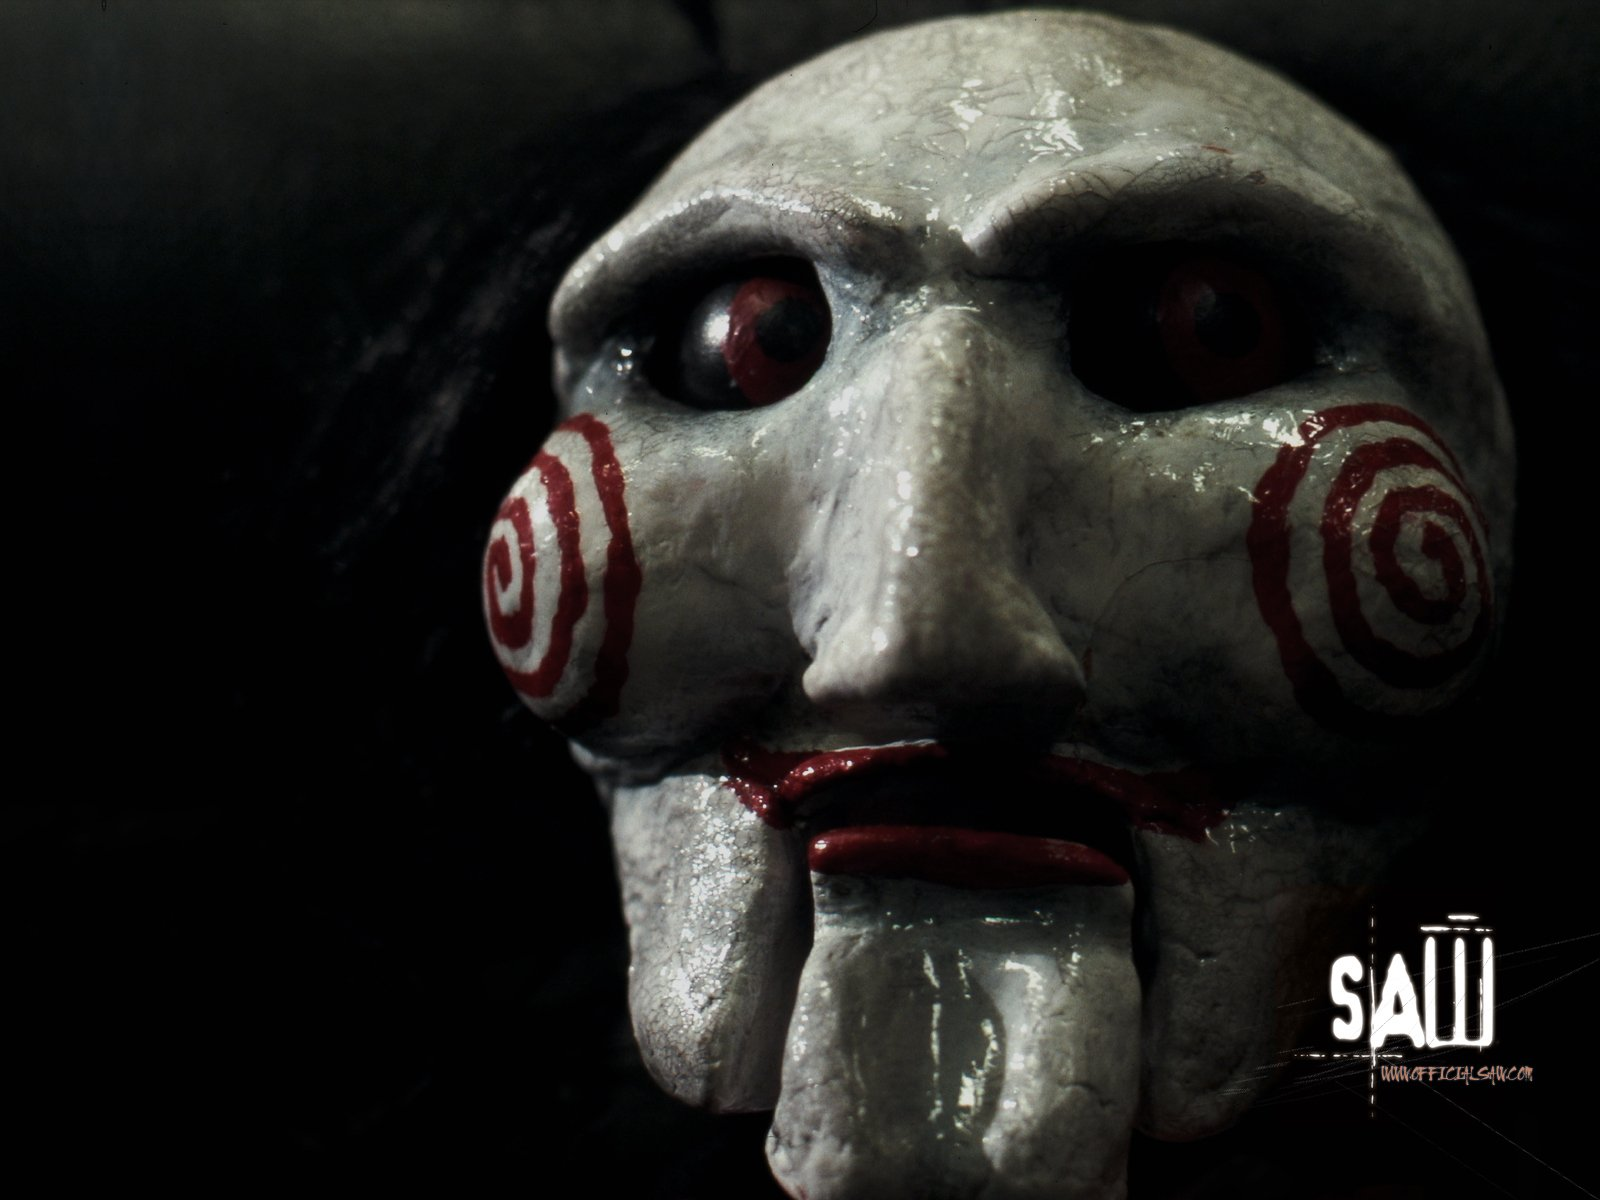 image of I wat to play a game. Saw